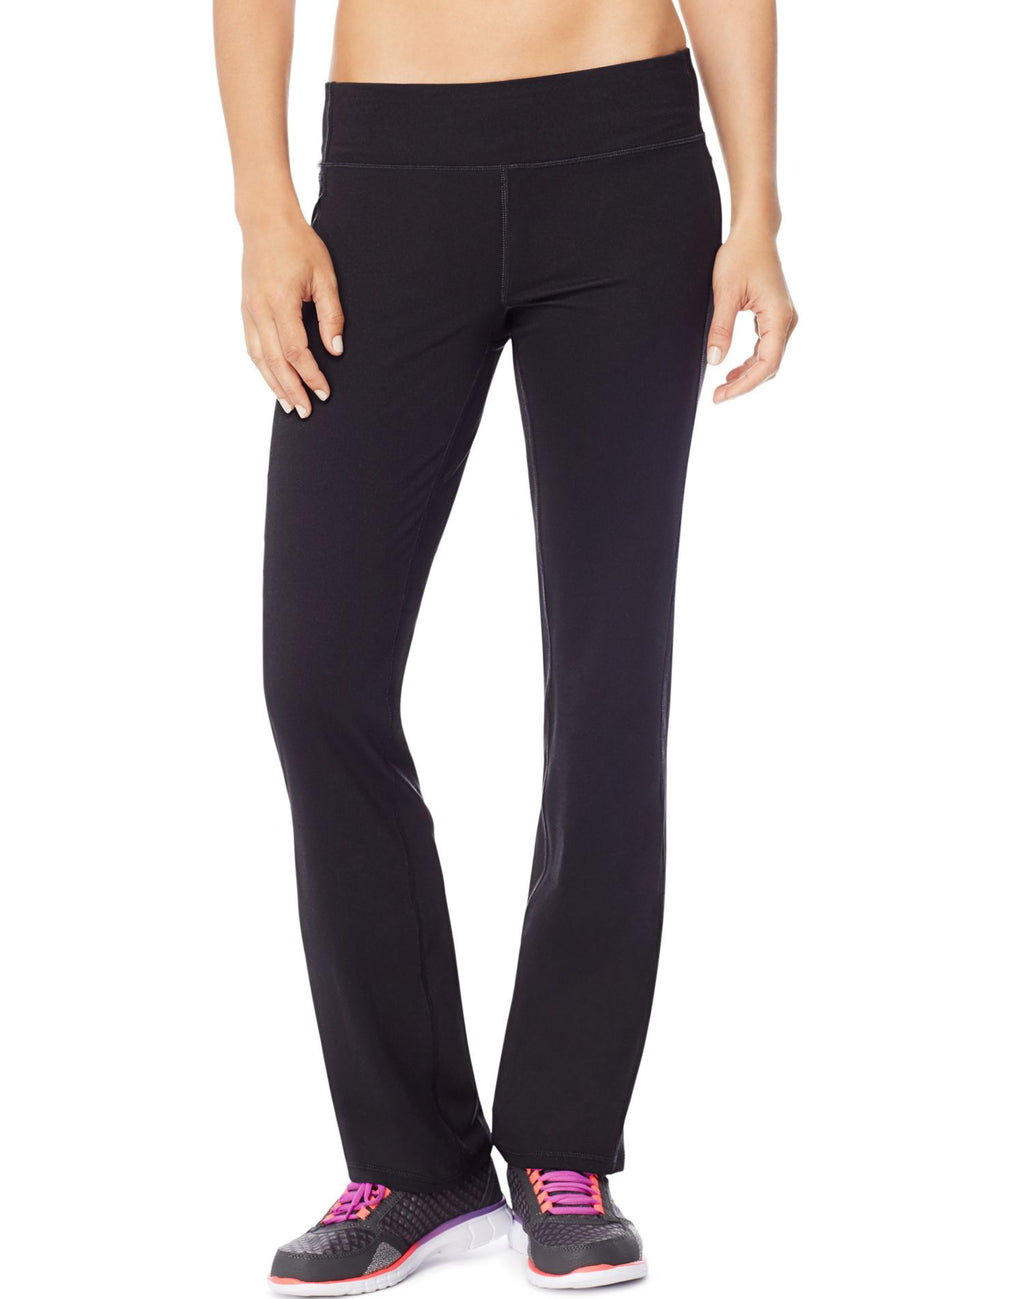 Hanes Womens Sport Performance Pants